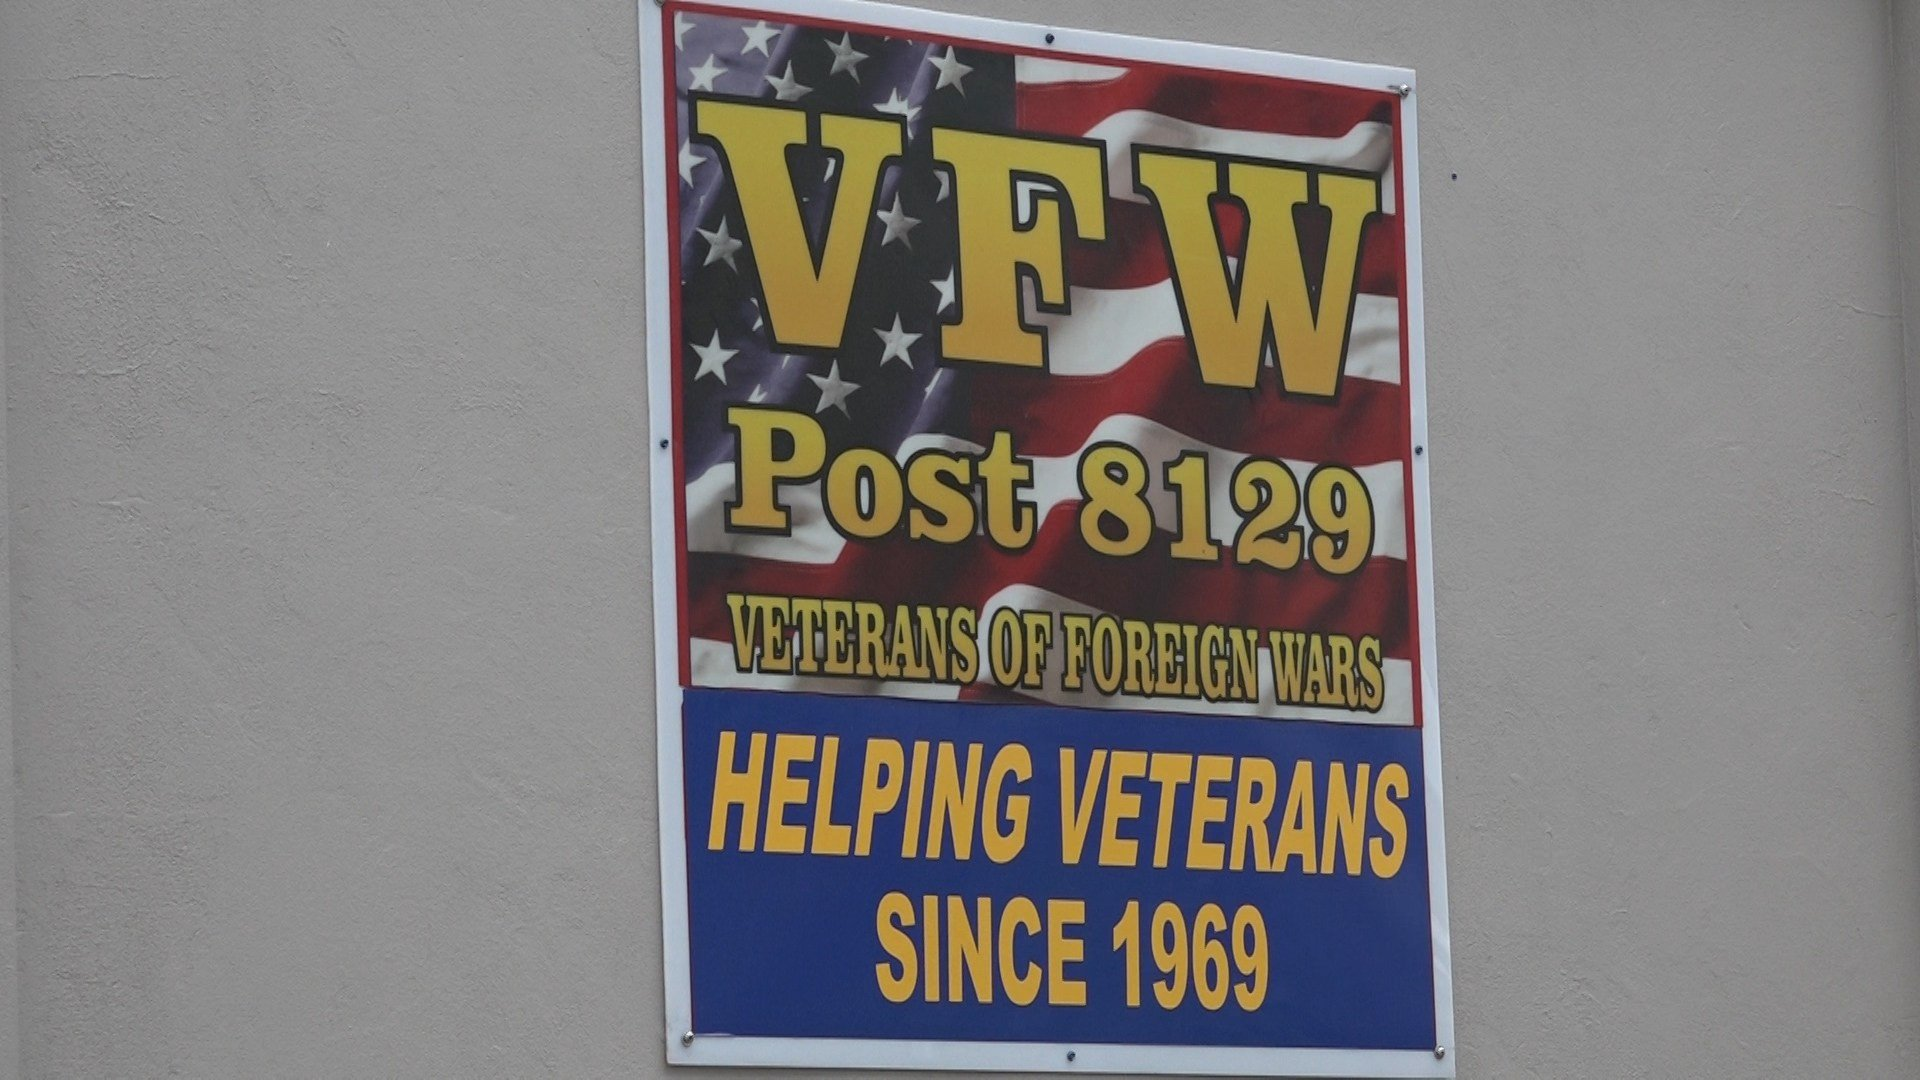 Special Session will also propose tax exemption for retired veterans.